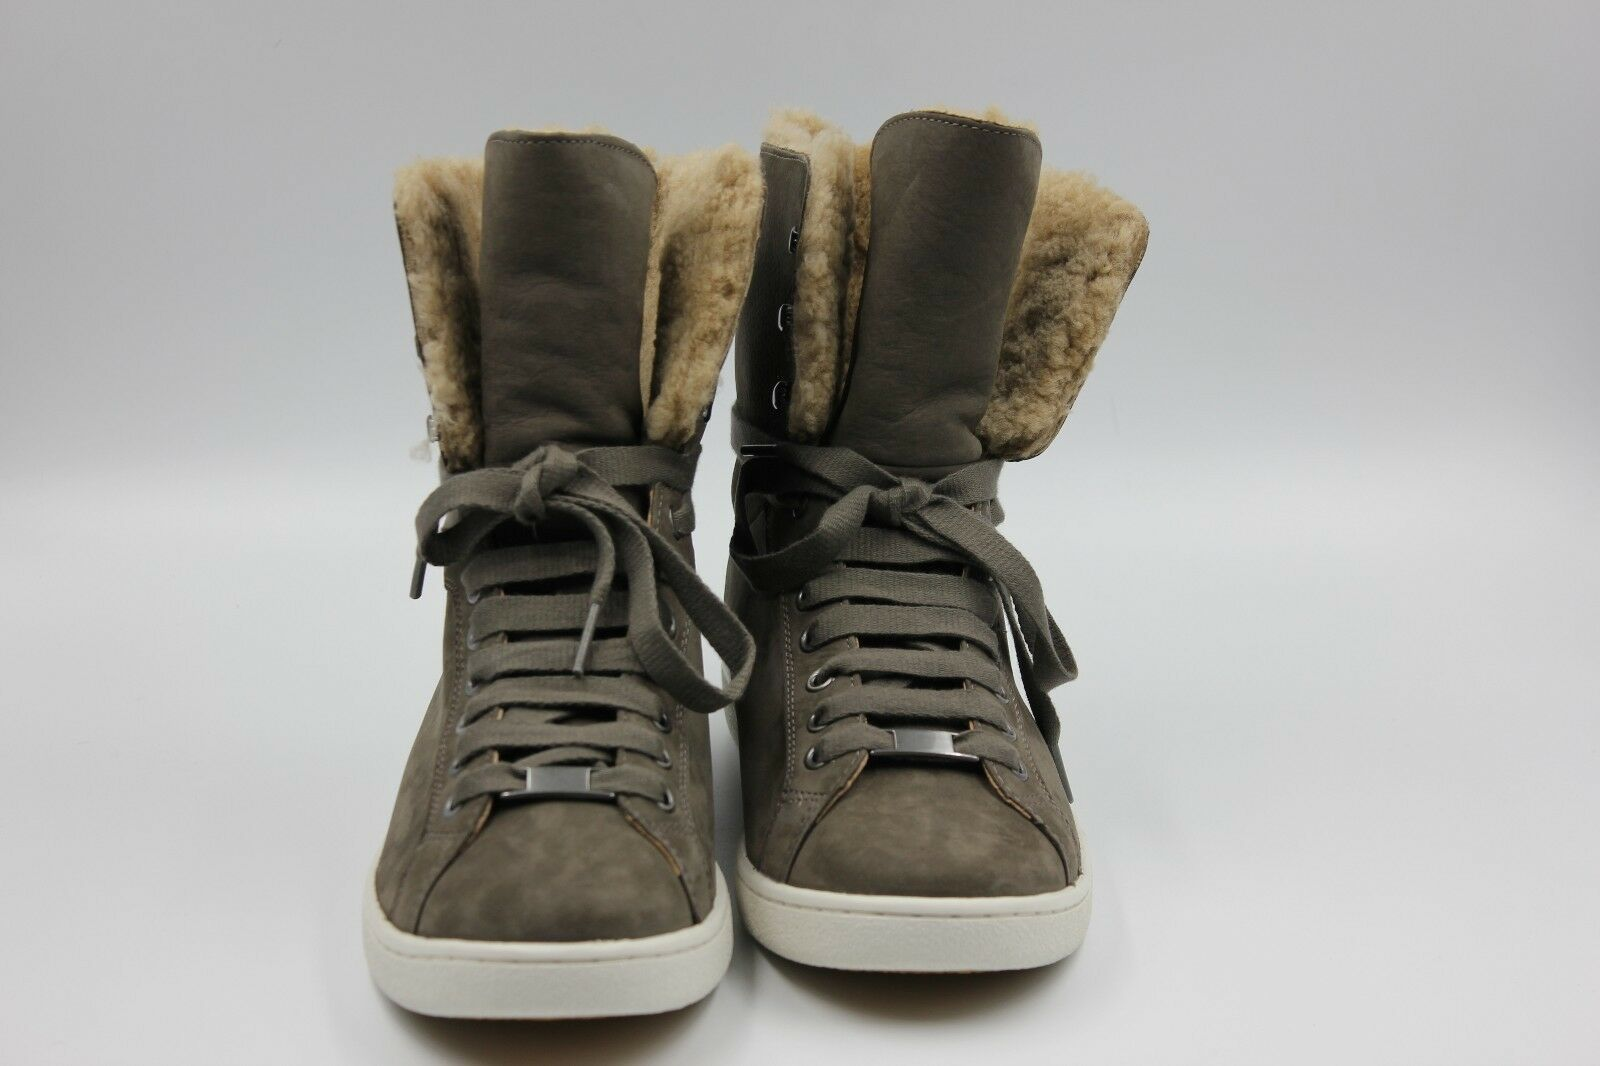 Ugg Starlyn Australia Sheepskin High Top ankle Sneakers in Mouse Nubuck new